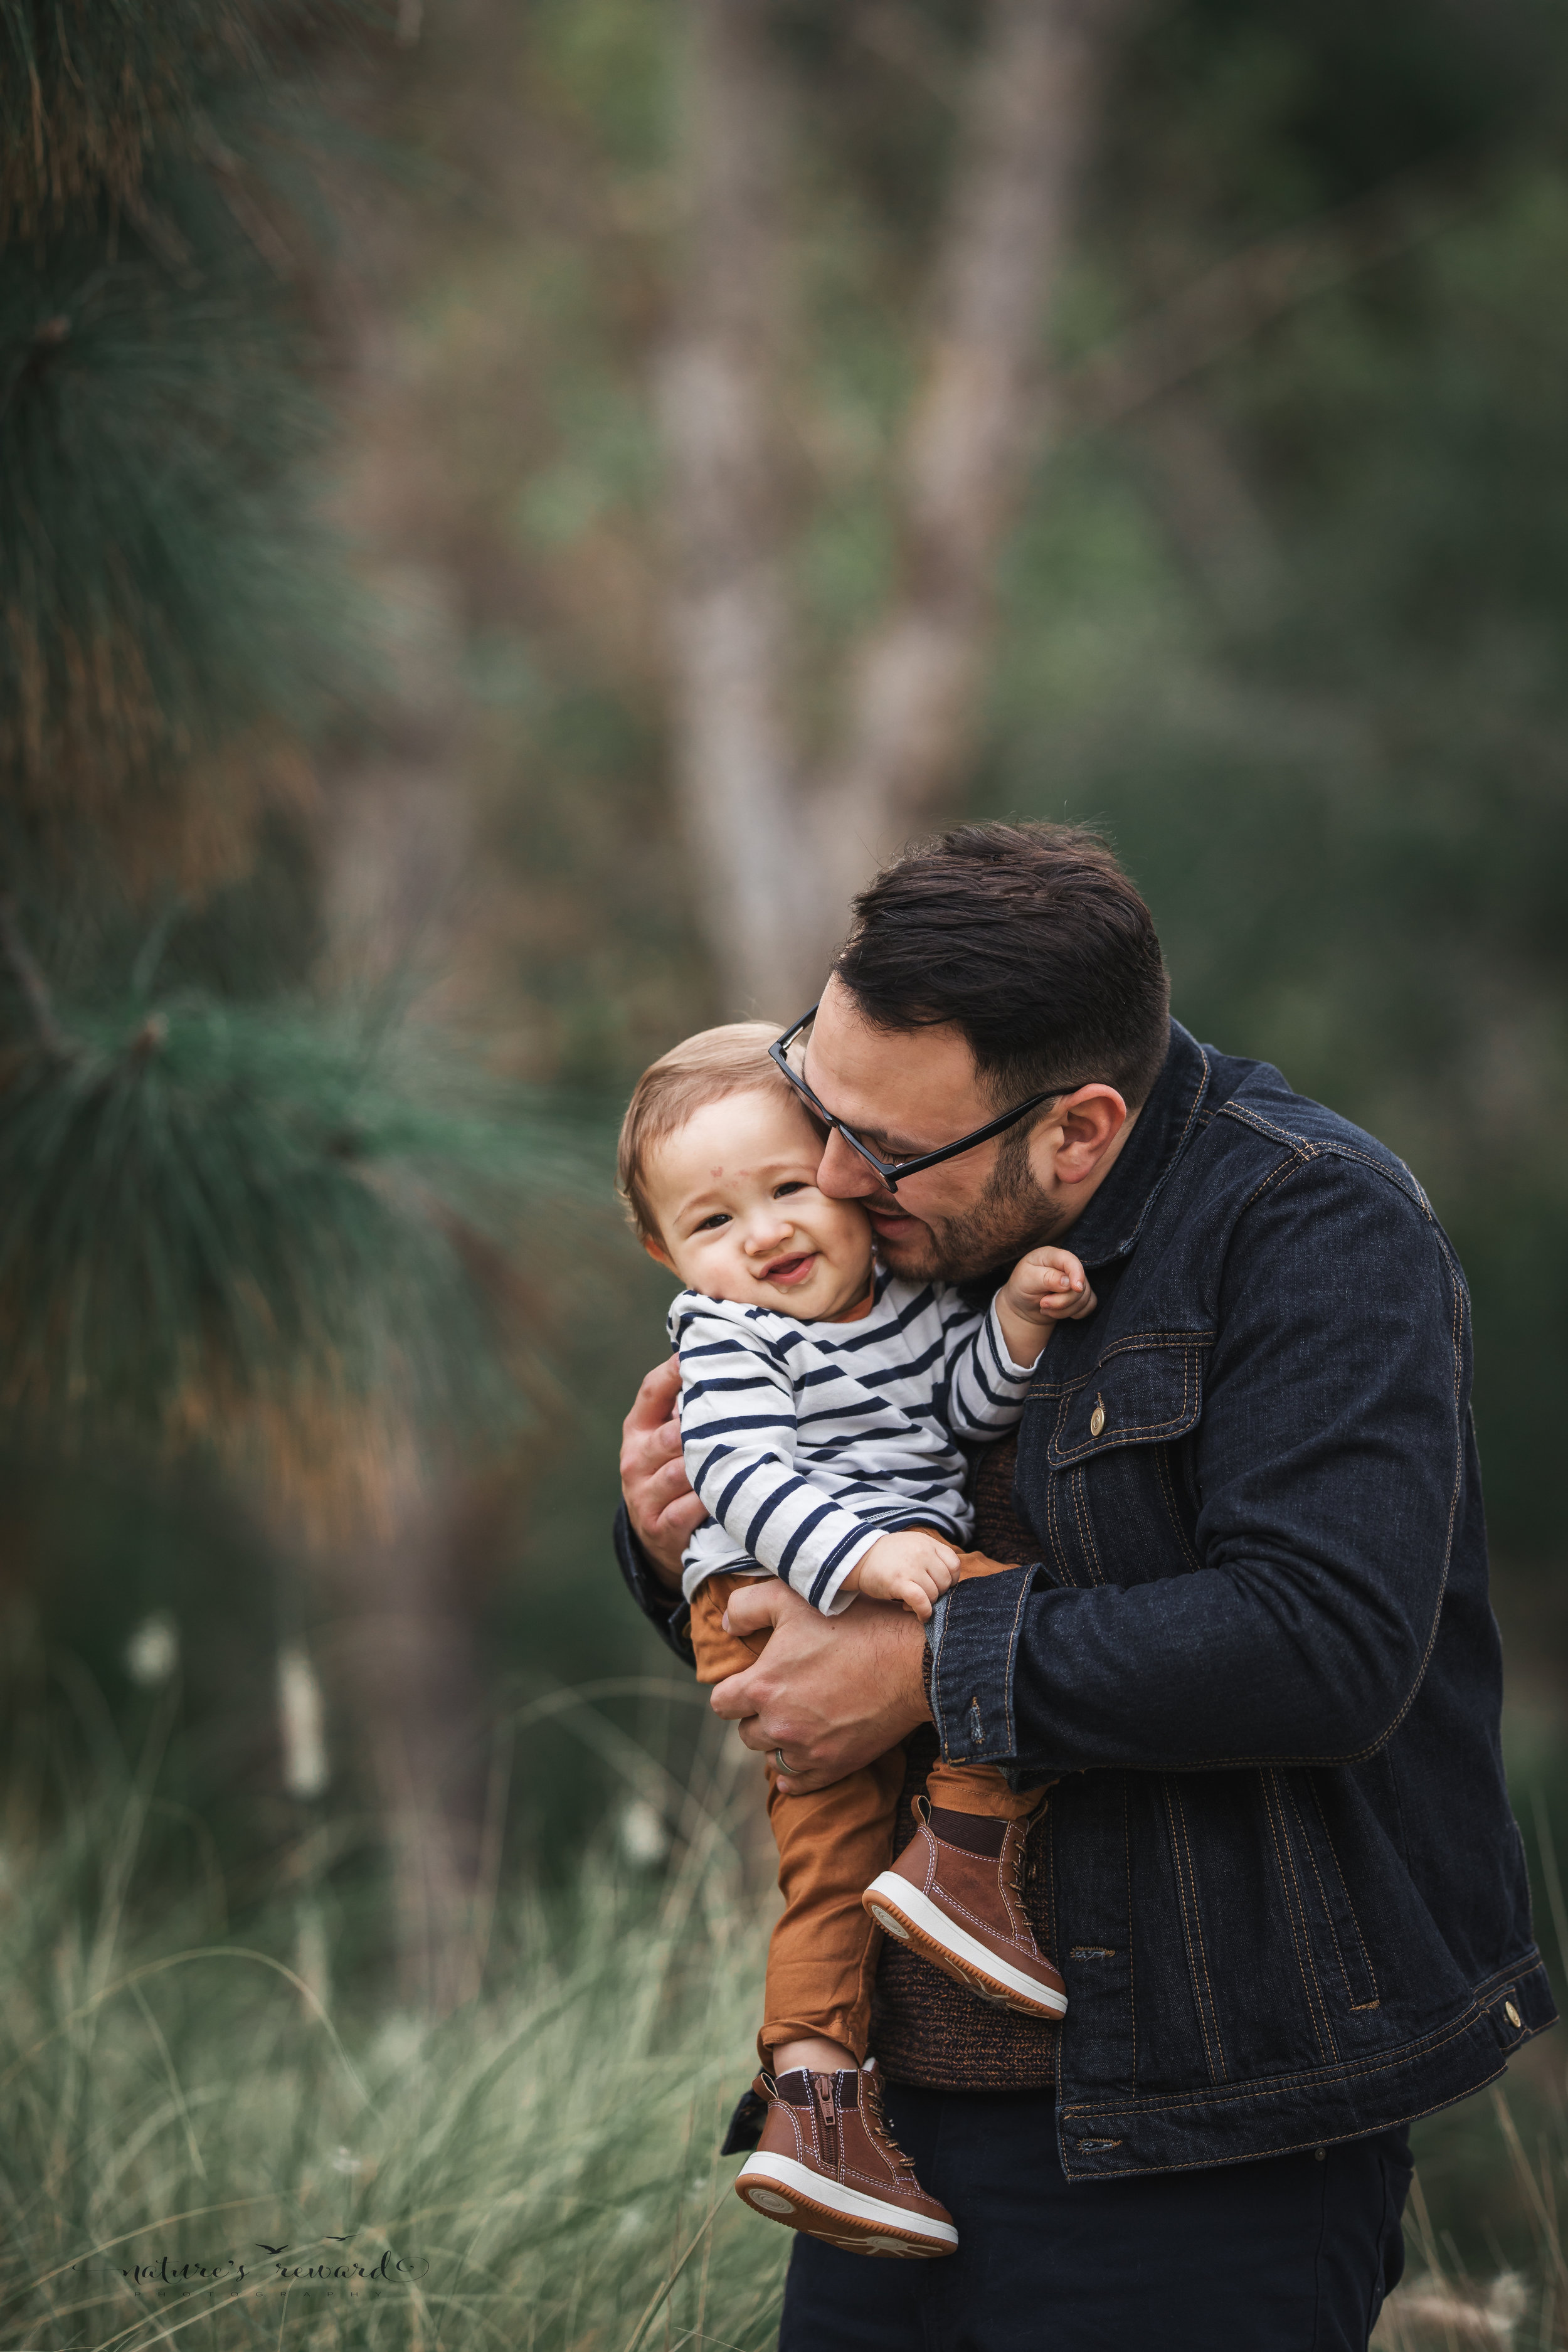 Baby boy in tans and blues with his  father in a portrait by Nature's reward Photography